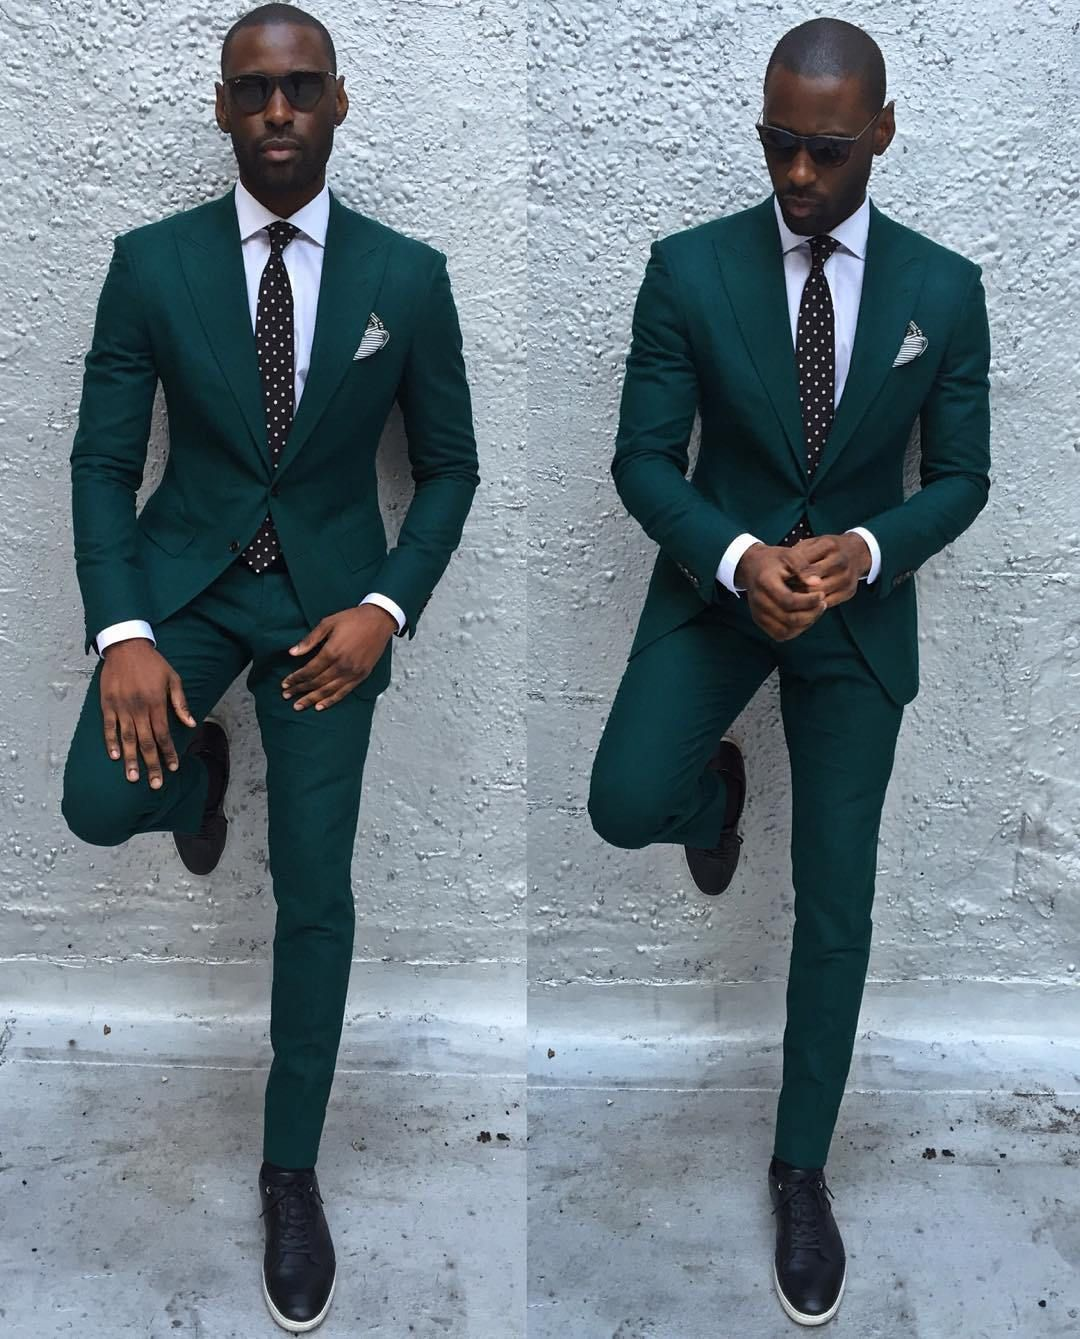 Davidson Frere green suits | Men black with style | Pinterest ...